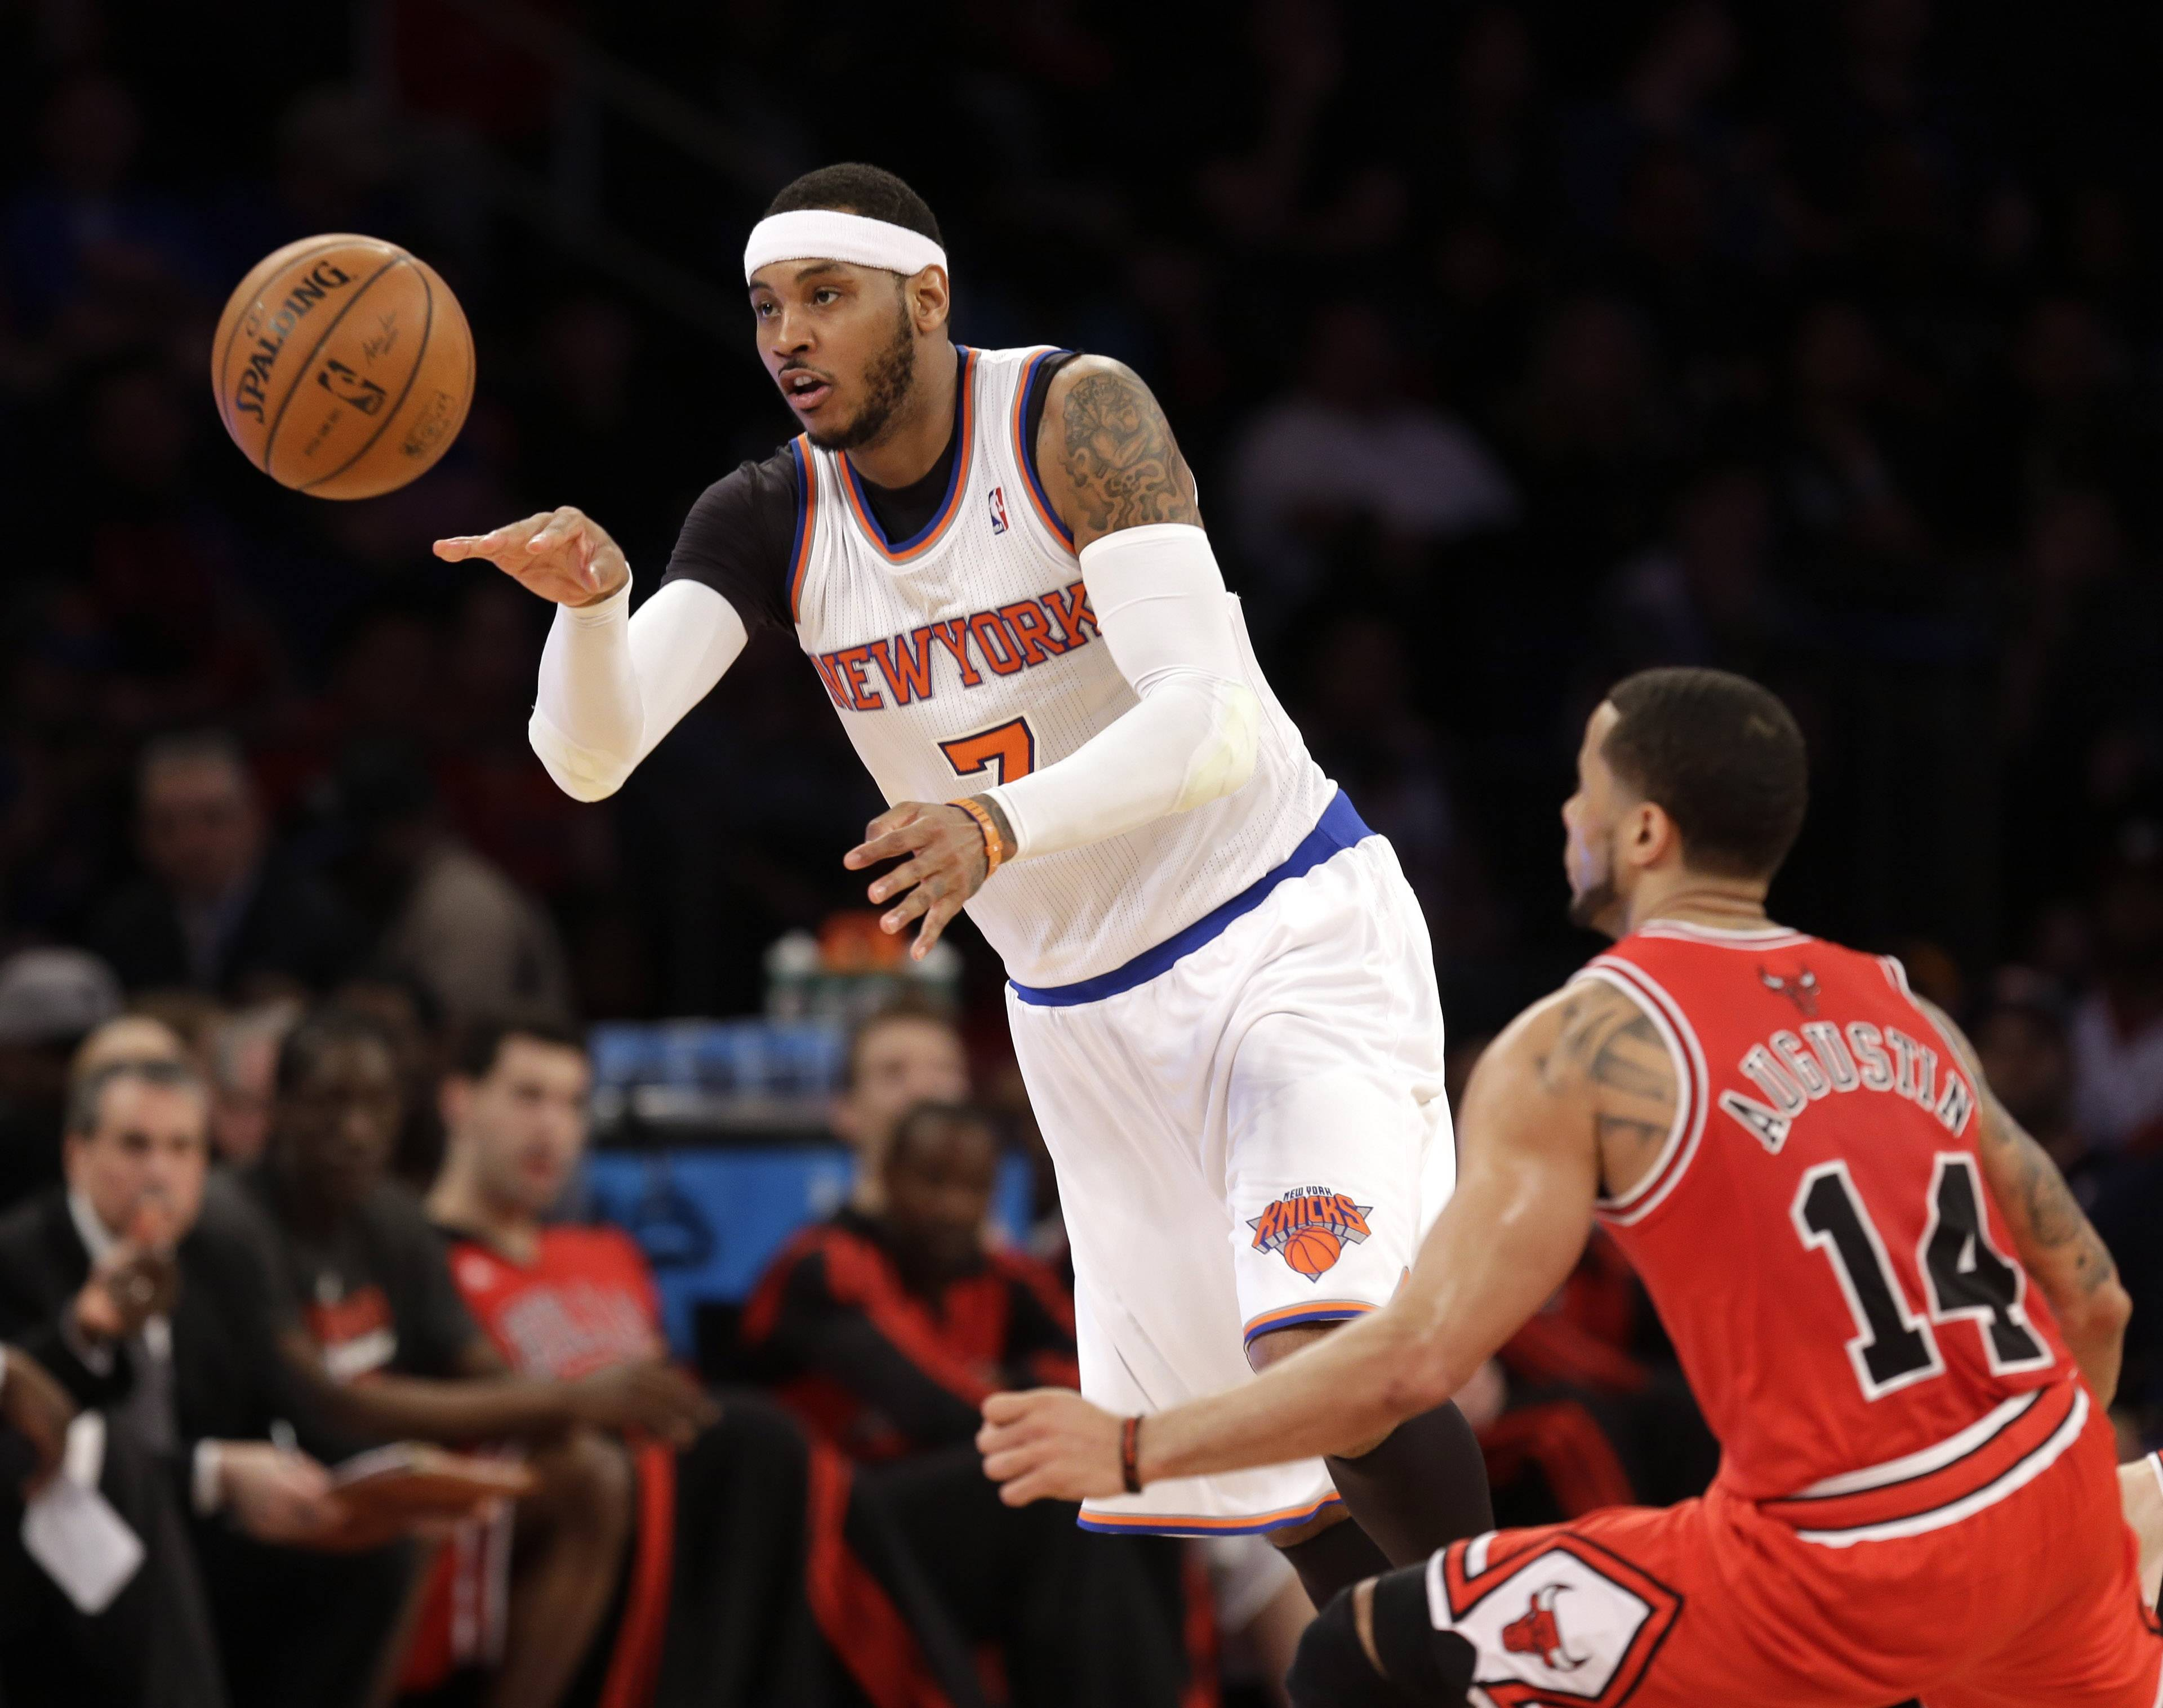 Carmelo Anthony, left, passes the ball past the Bulls' D.J. Augustin in their game on April 13. Anthony talked about his NBA future Thursday and made it quite clear he wants to play for a winning team next season.